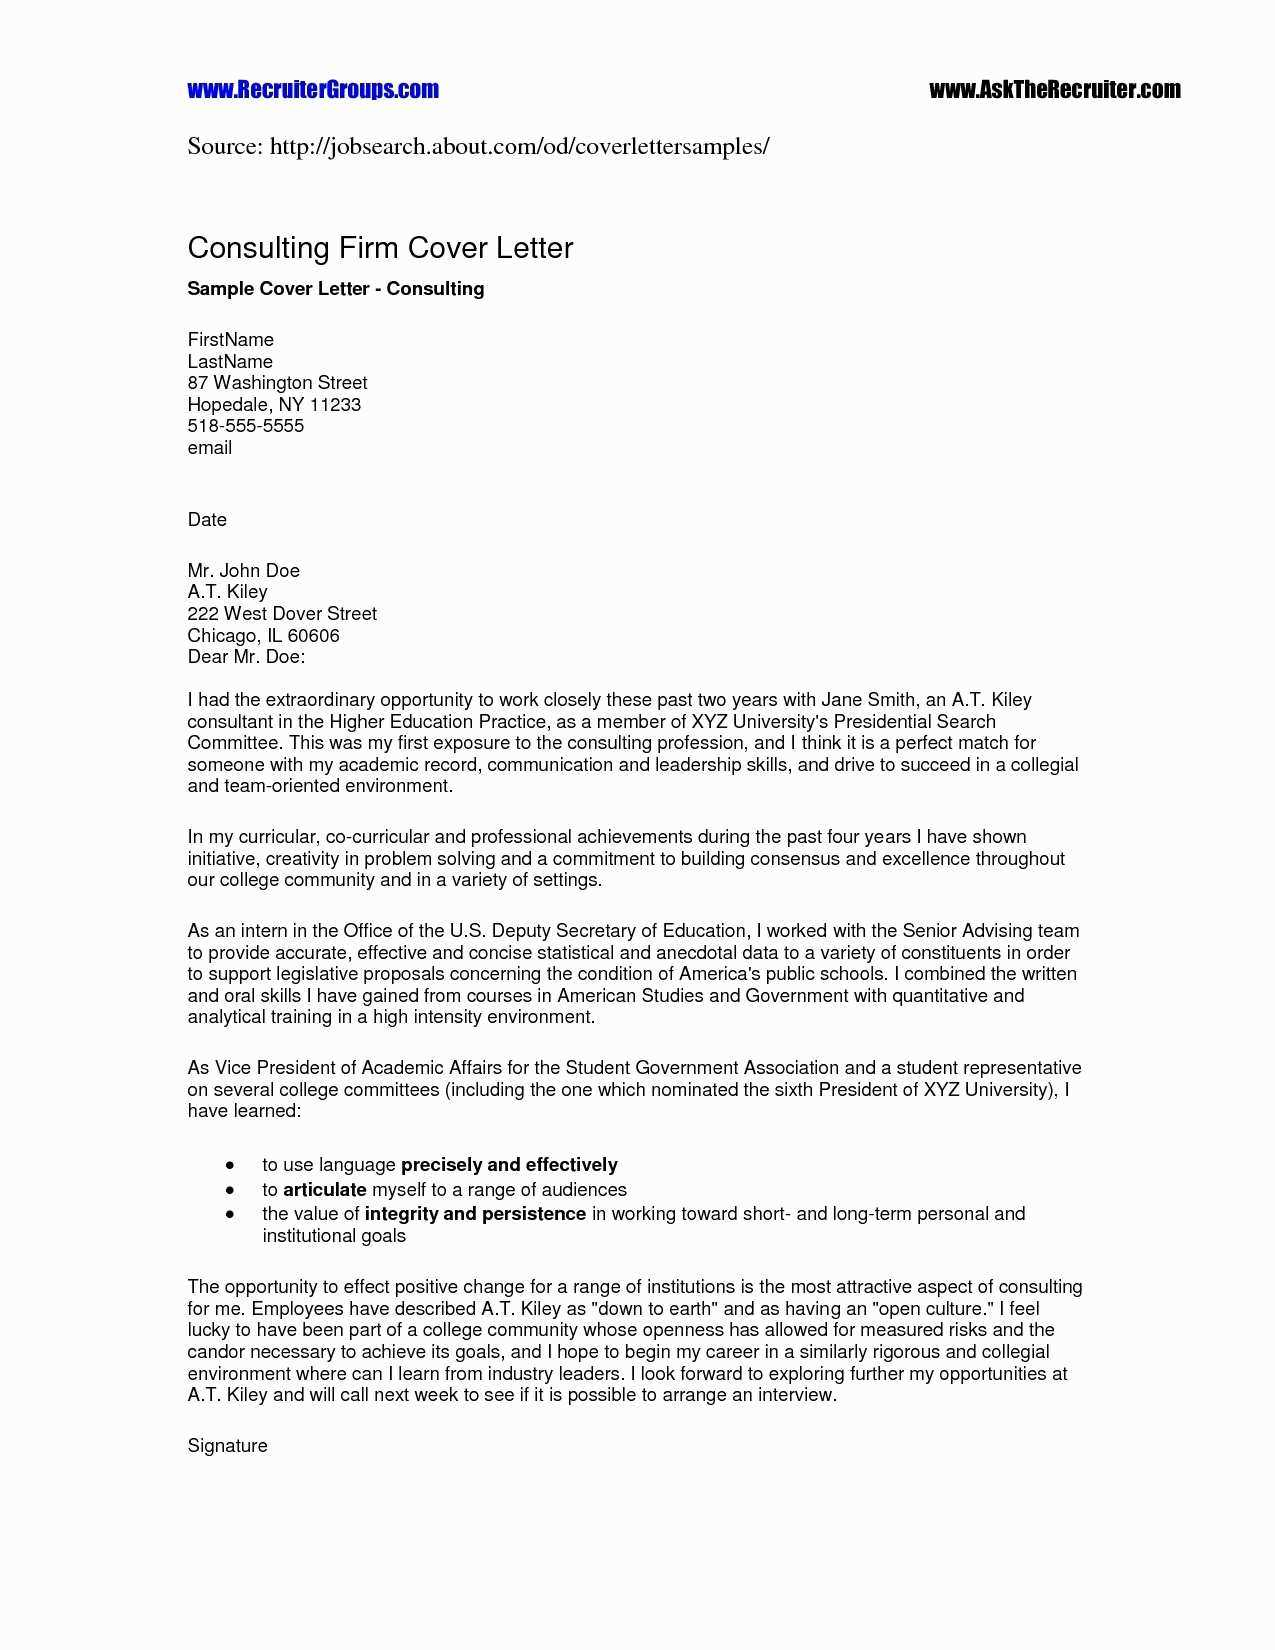 letter of agreement template between two parties Collection-Agreement Between Two Parties Best Letter Template for Loan Download by size Handphone Tablet 19-h